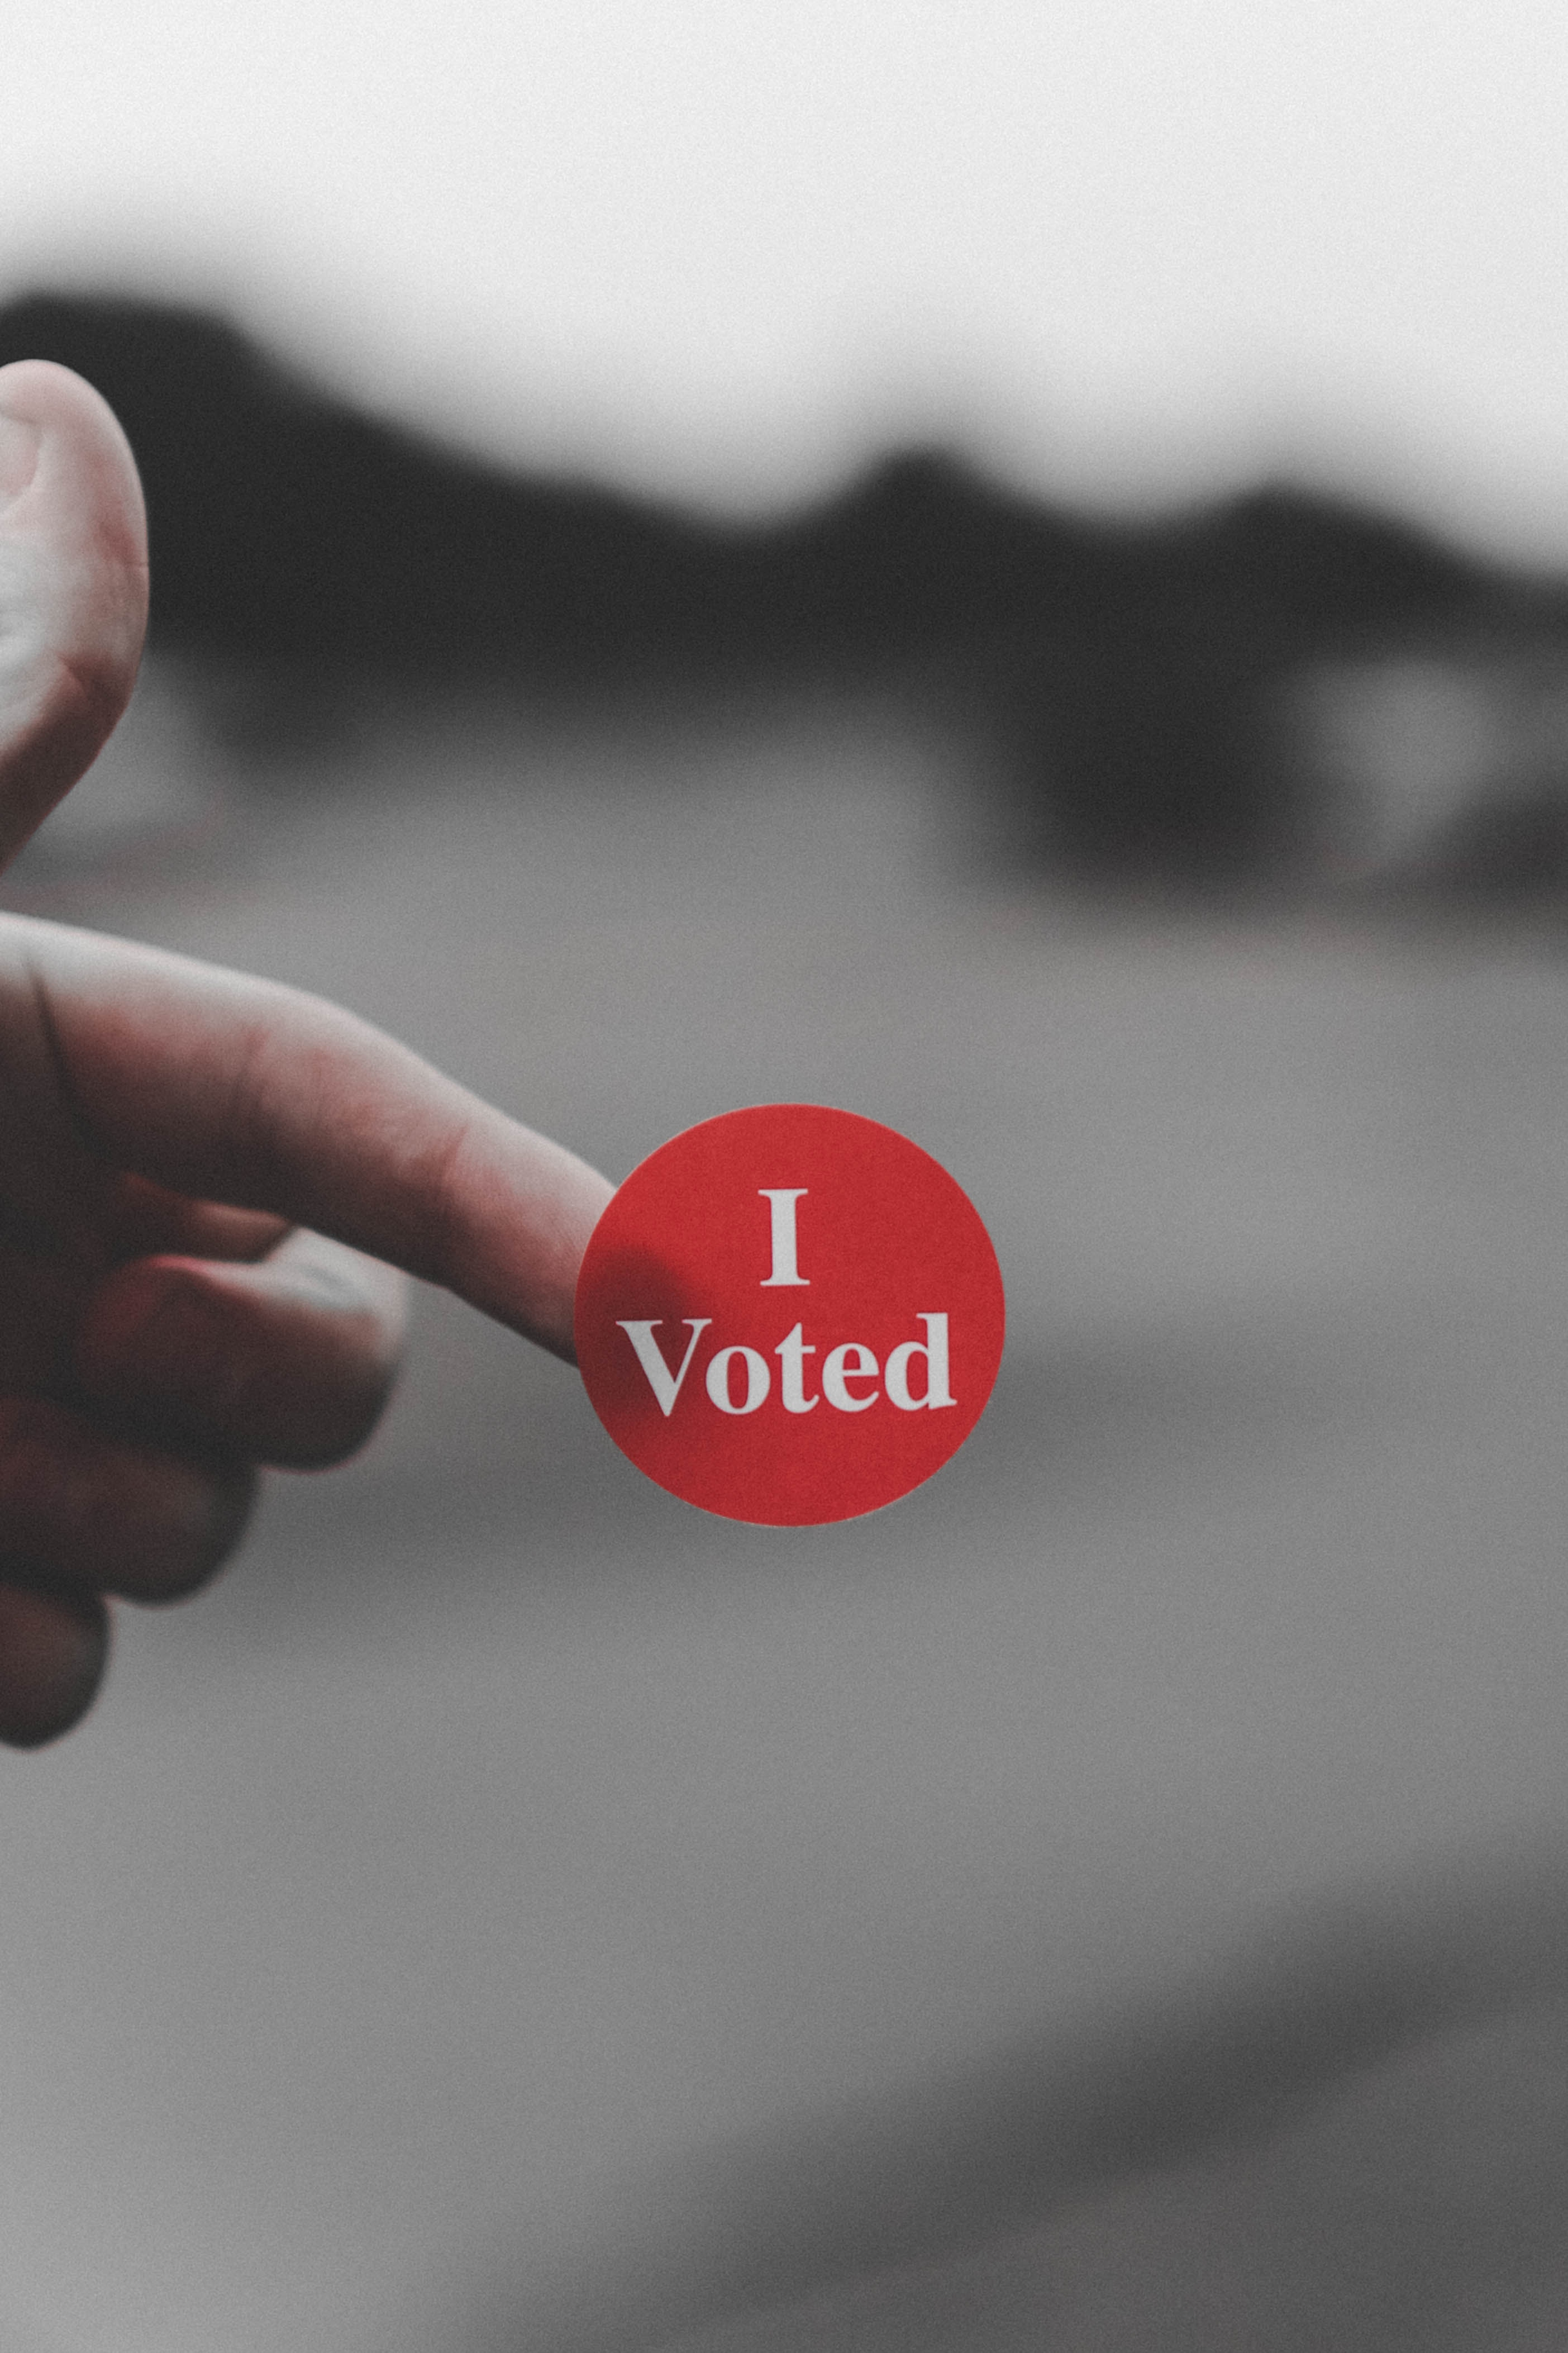 Voting – a right and a privilege